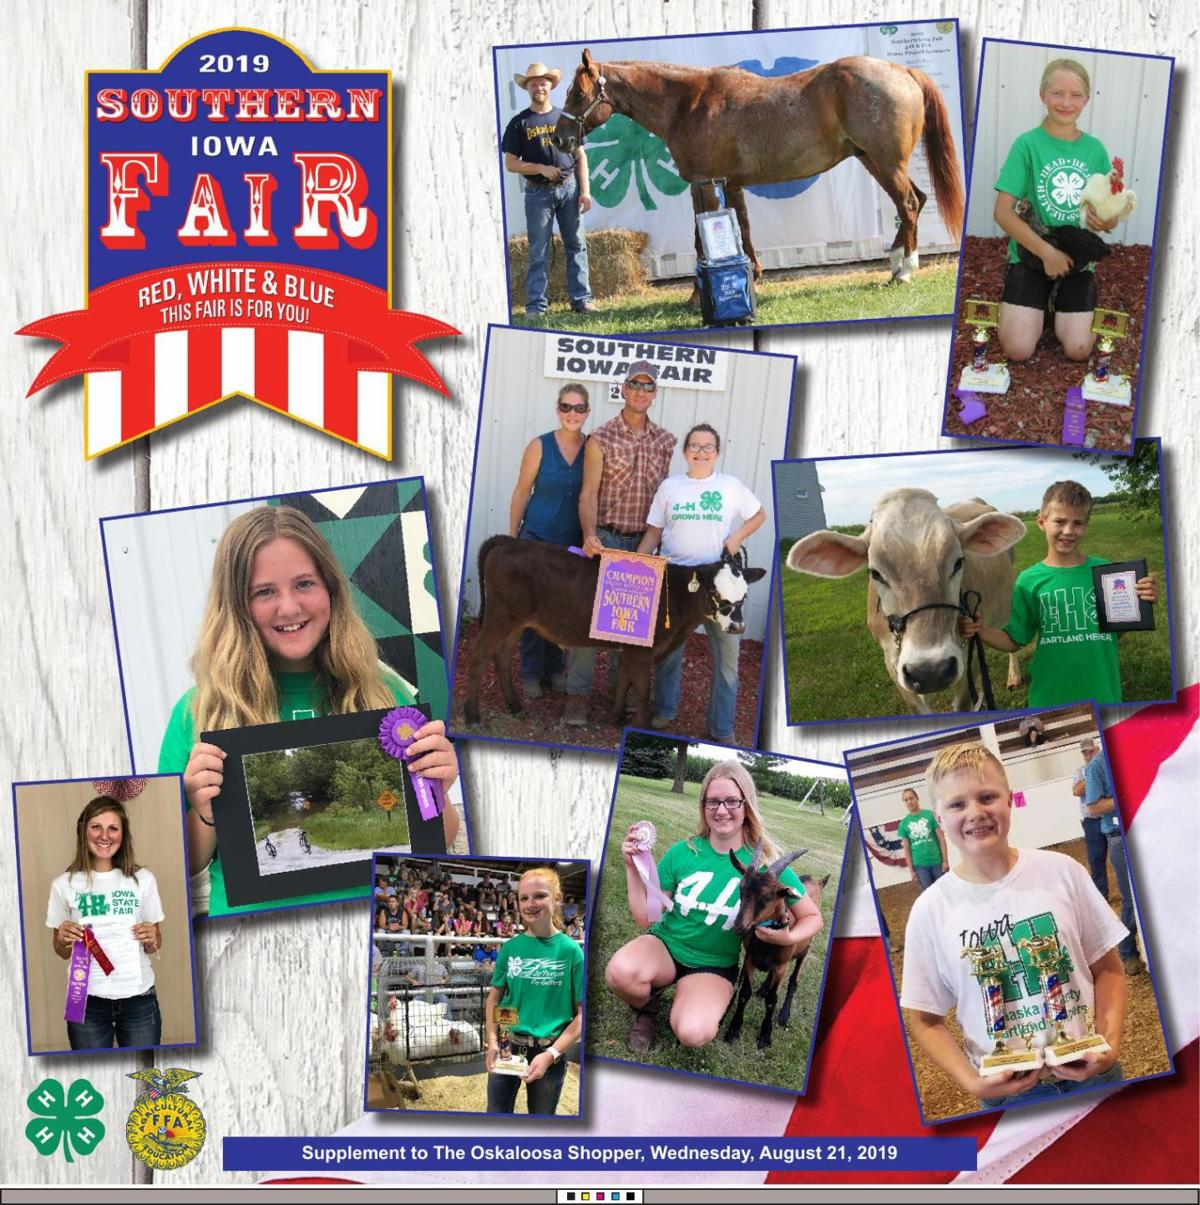 Southern Iowa Fair Review 2019